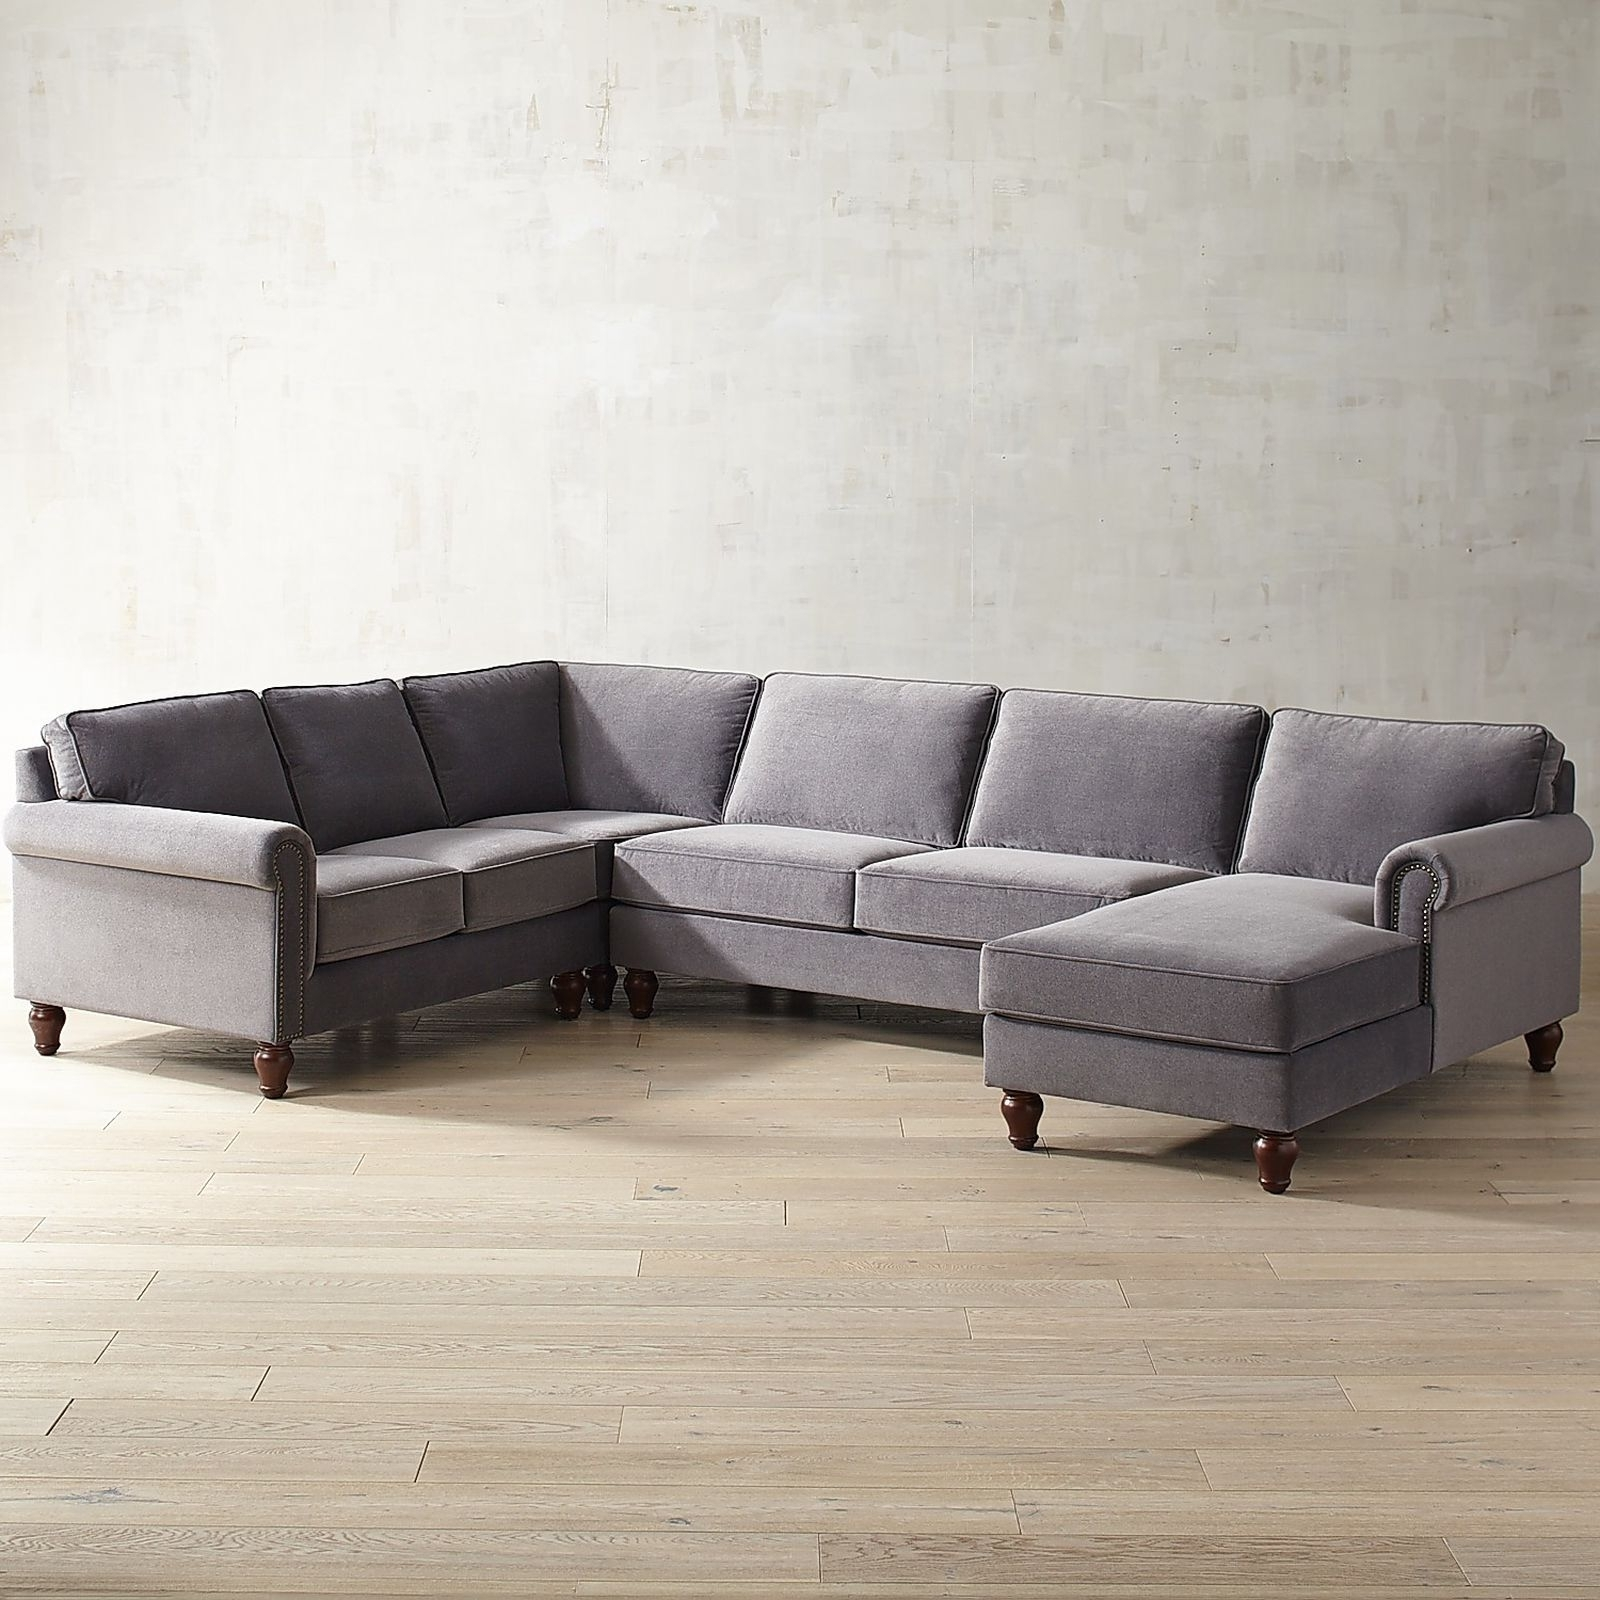 Sectional Sofa Clearance Sale Sofas Warehouse Toronto Fabric With Popular Canada Sale Sectional Sofas (View 16 of 20)